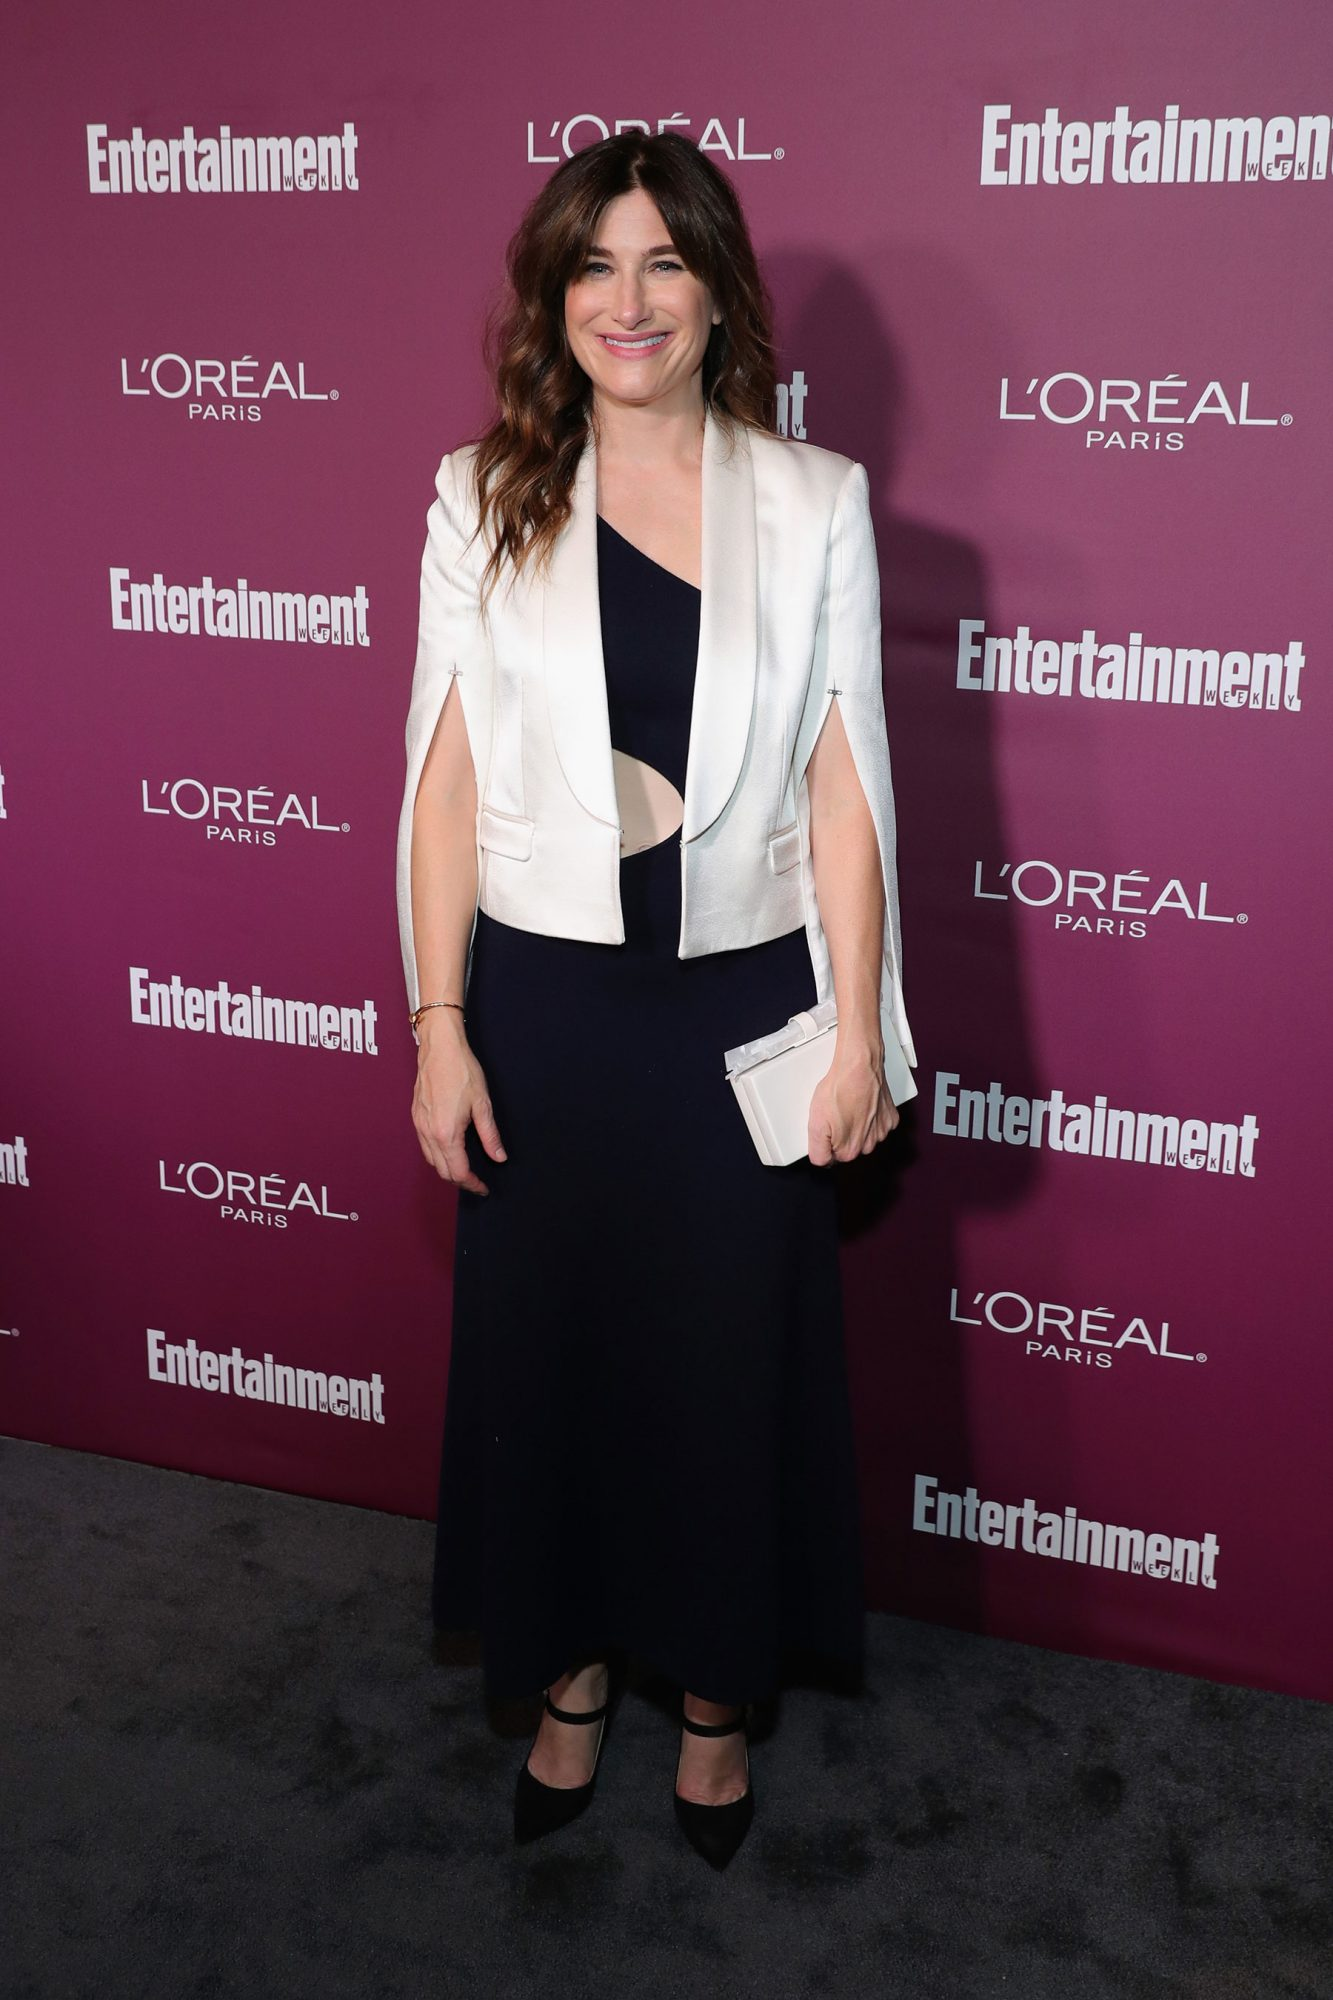 Emmy Weekend Is Here! See Photos from the Annual EW Pre-Party